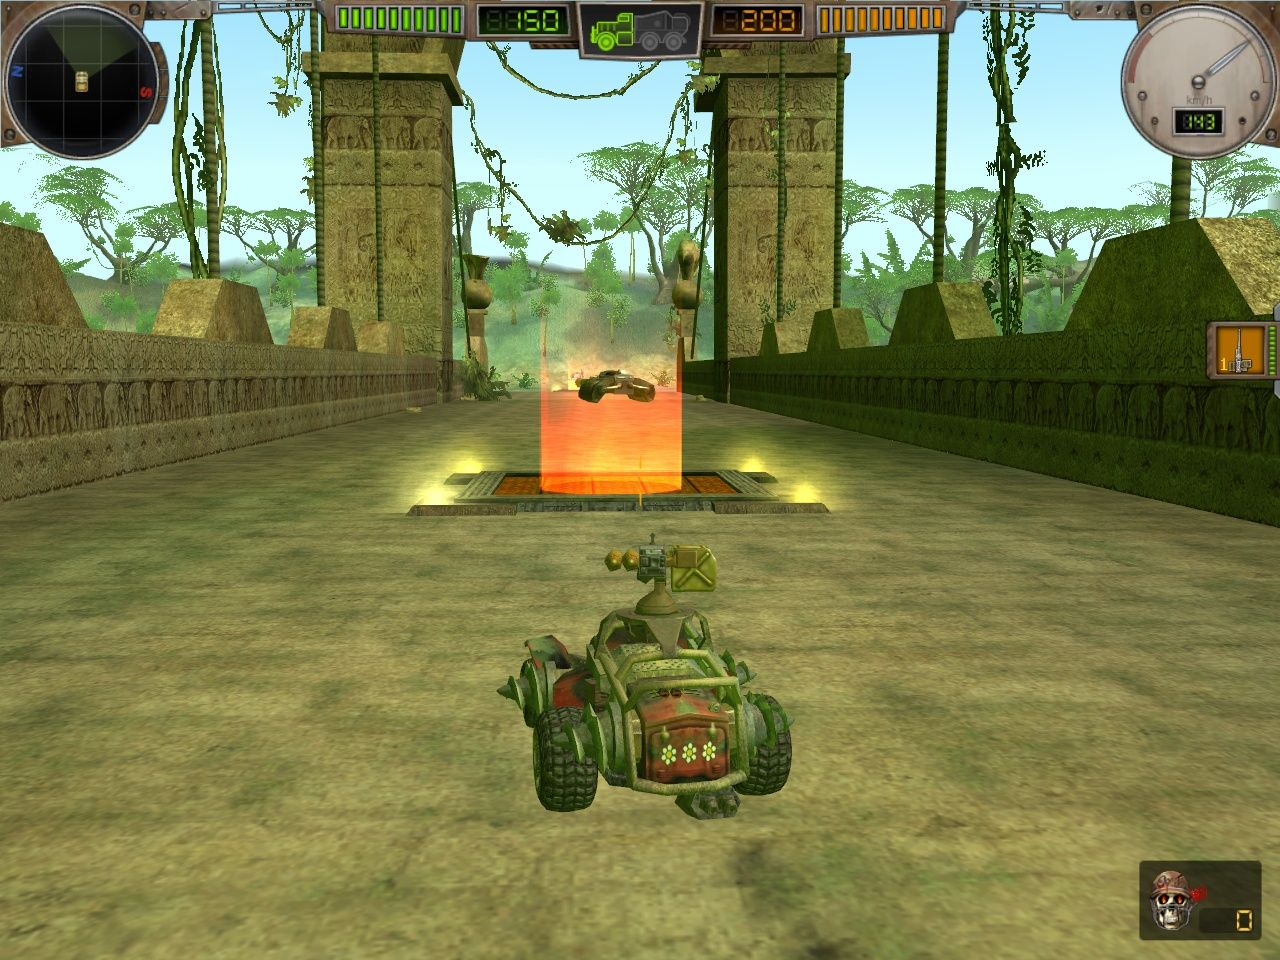 Hard Truck: Apocalypse - Rise of Clans Windows The multiplayer modes offer a more 'arcade' style experience, with weapons and power-ups scattered around.